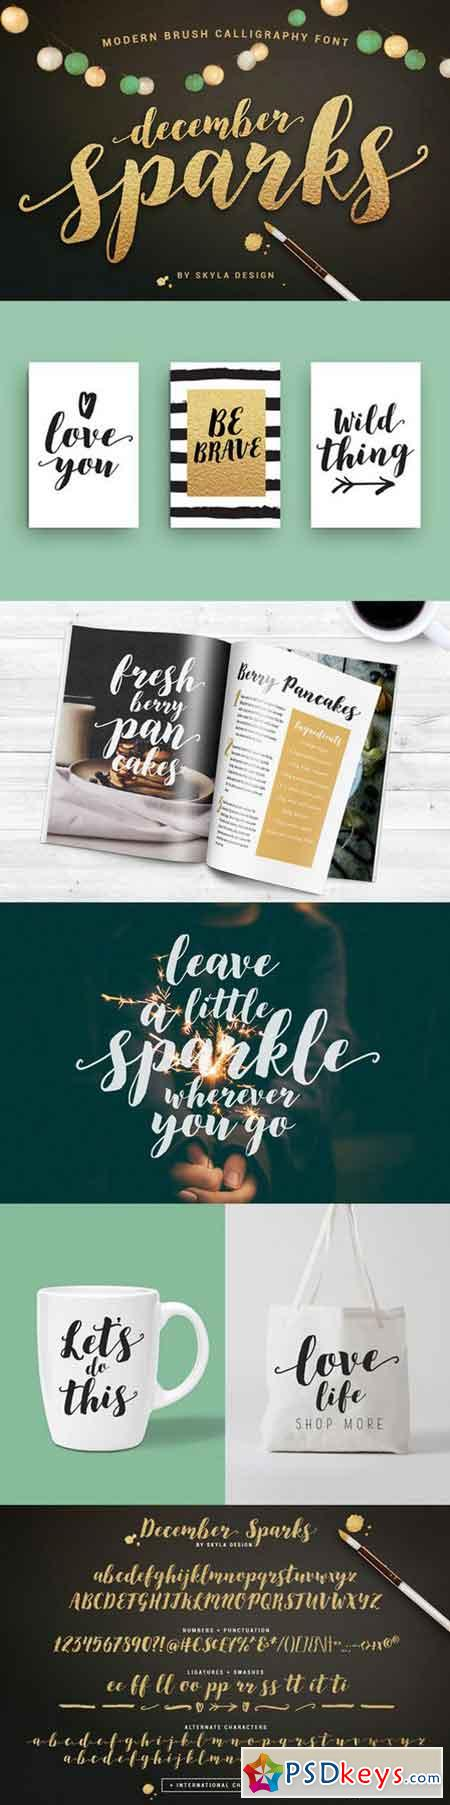 Modern brush font, December Sparks 878353